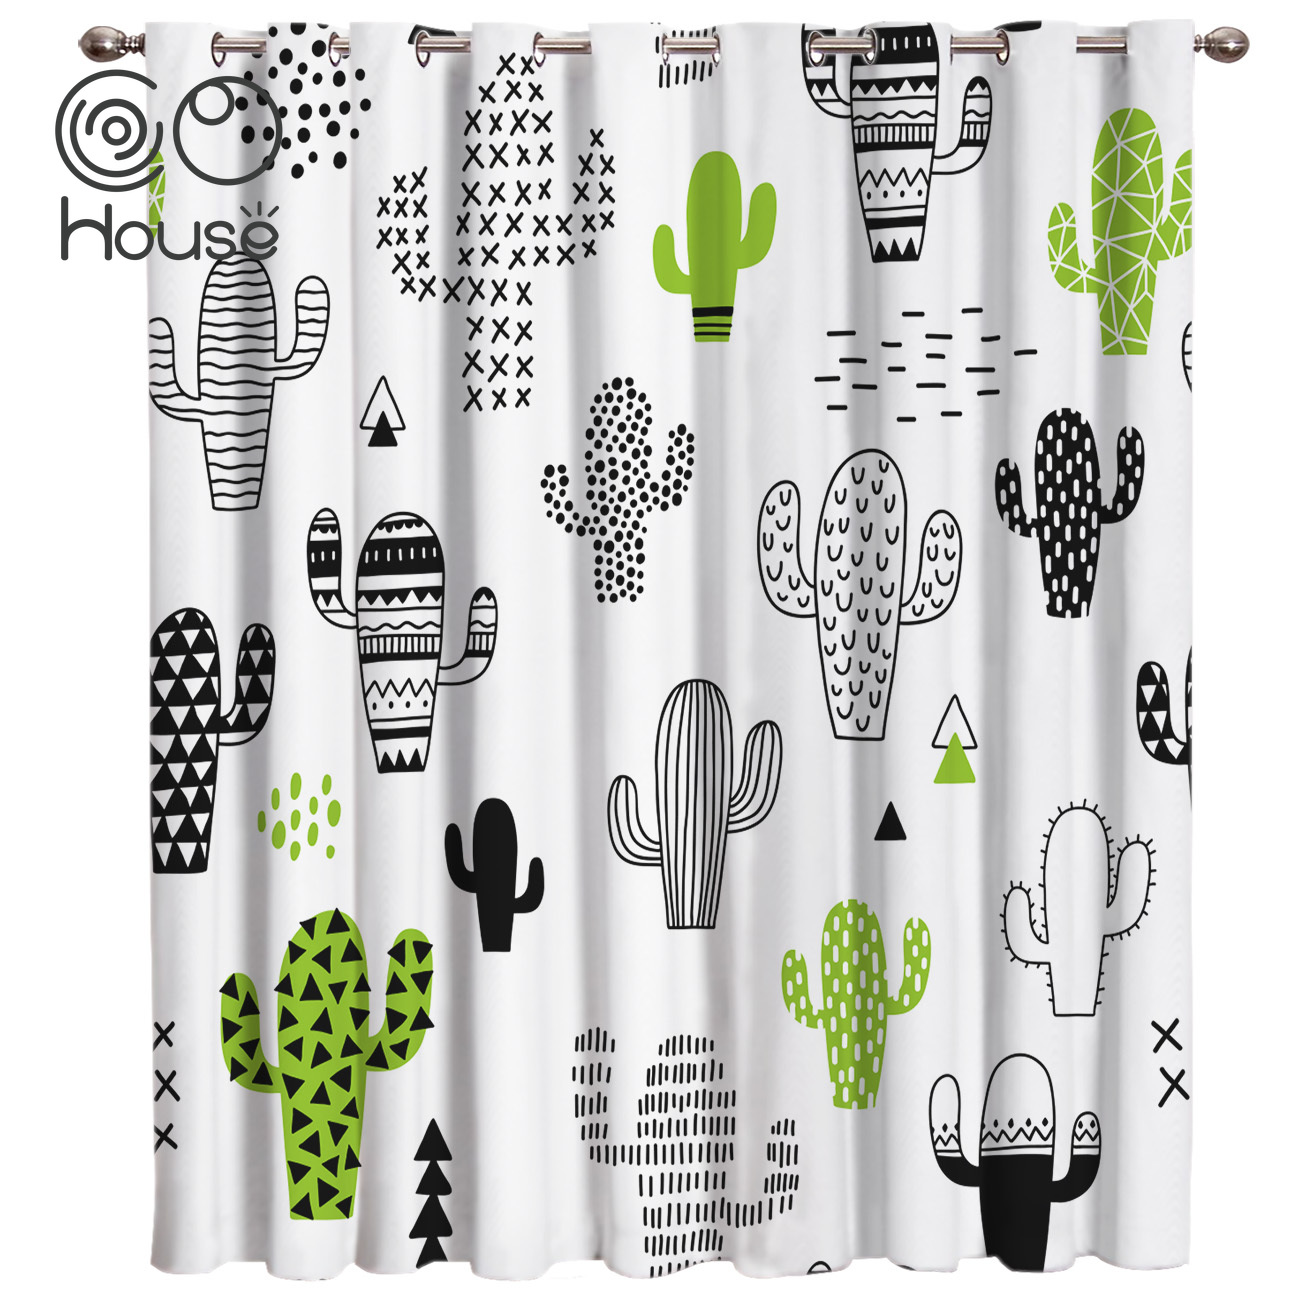 Cocohouse Cute Graffiti Green Cactus Window Treatments Curtains